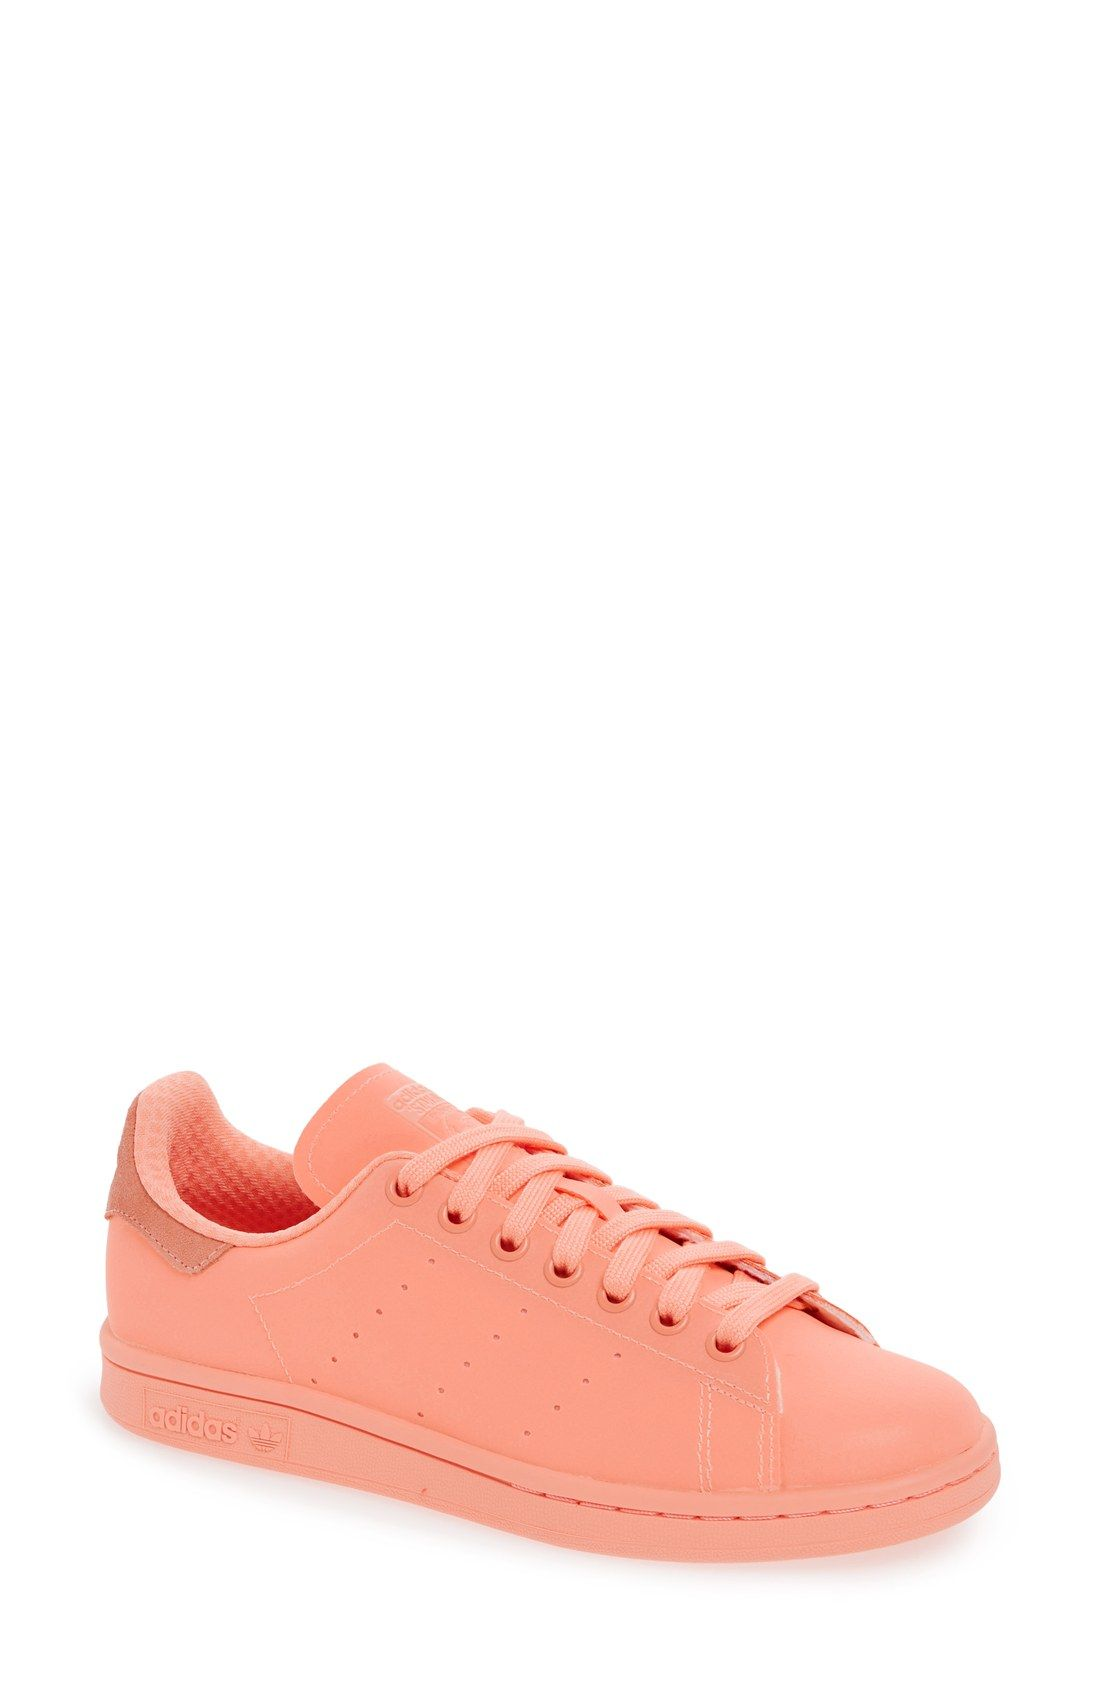 Crushing on this pink Adidas sneaker that add a pop of color to the street wear.